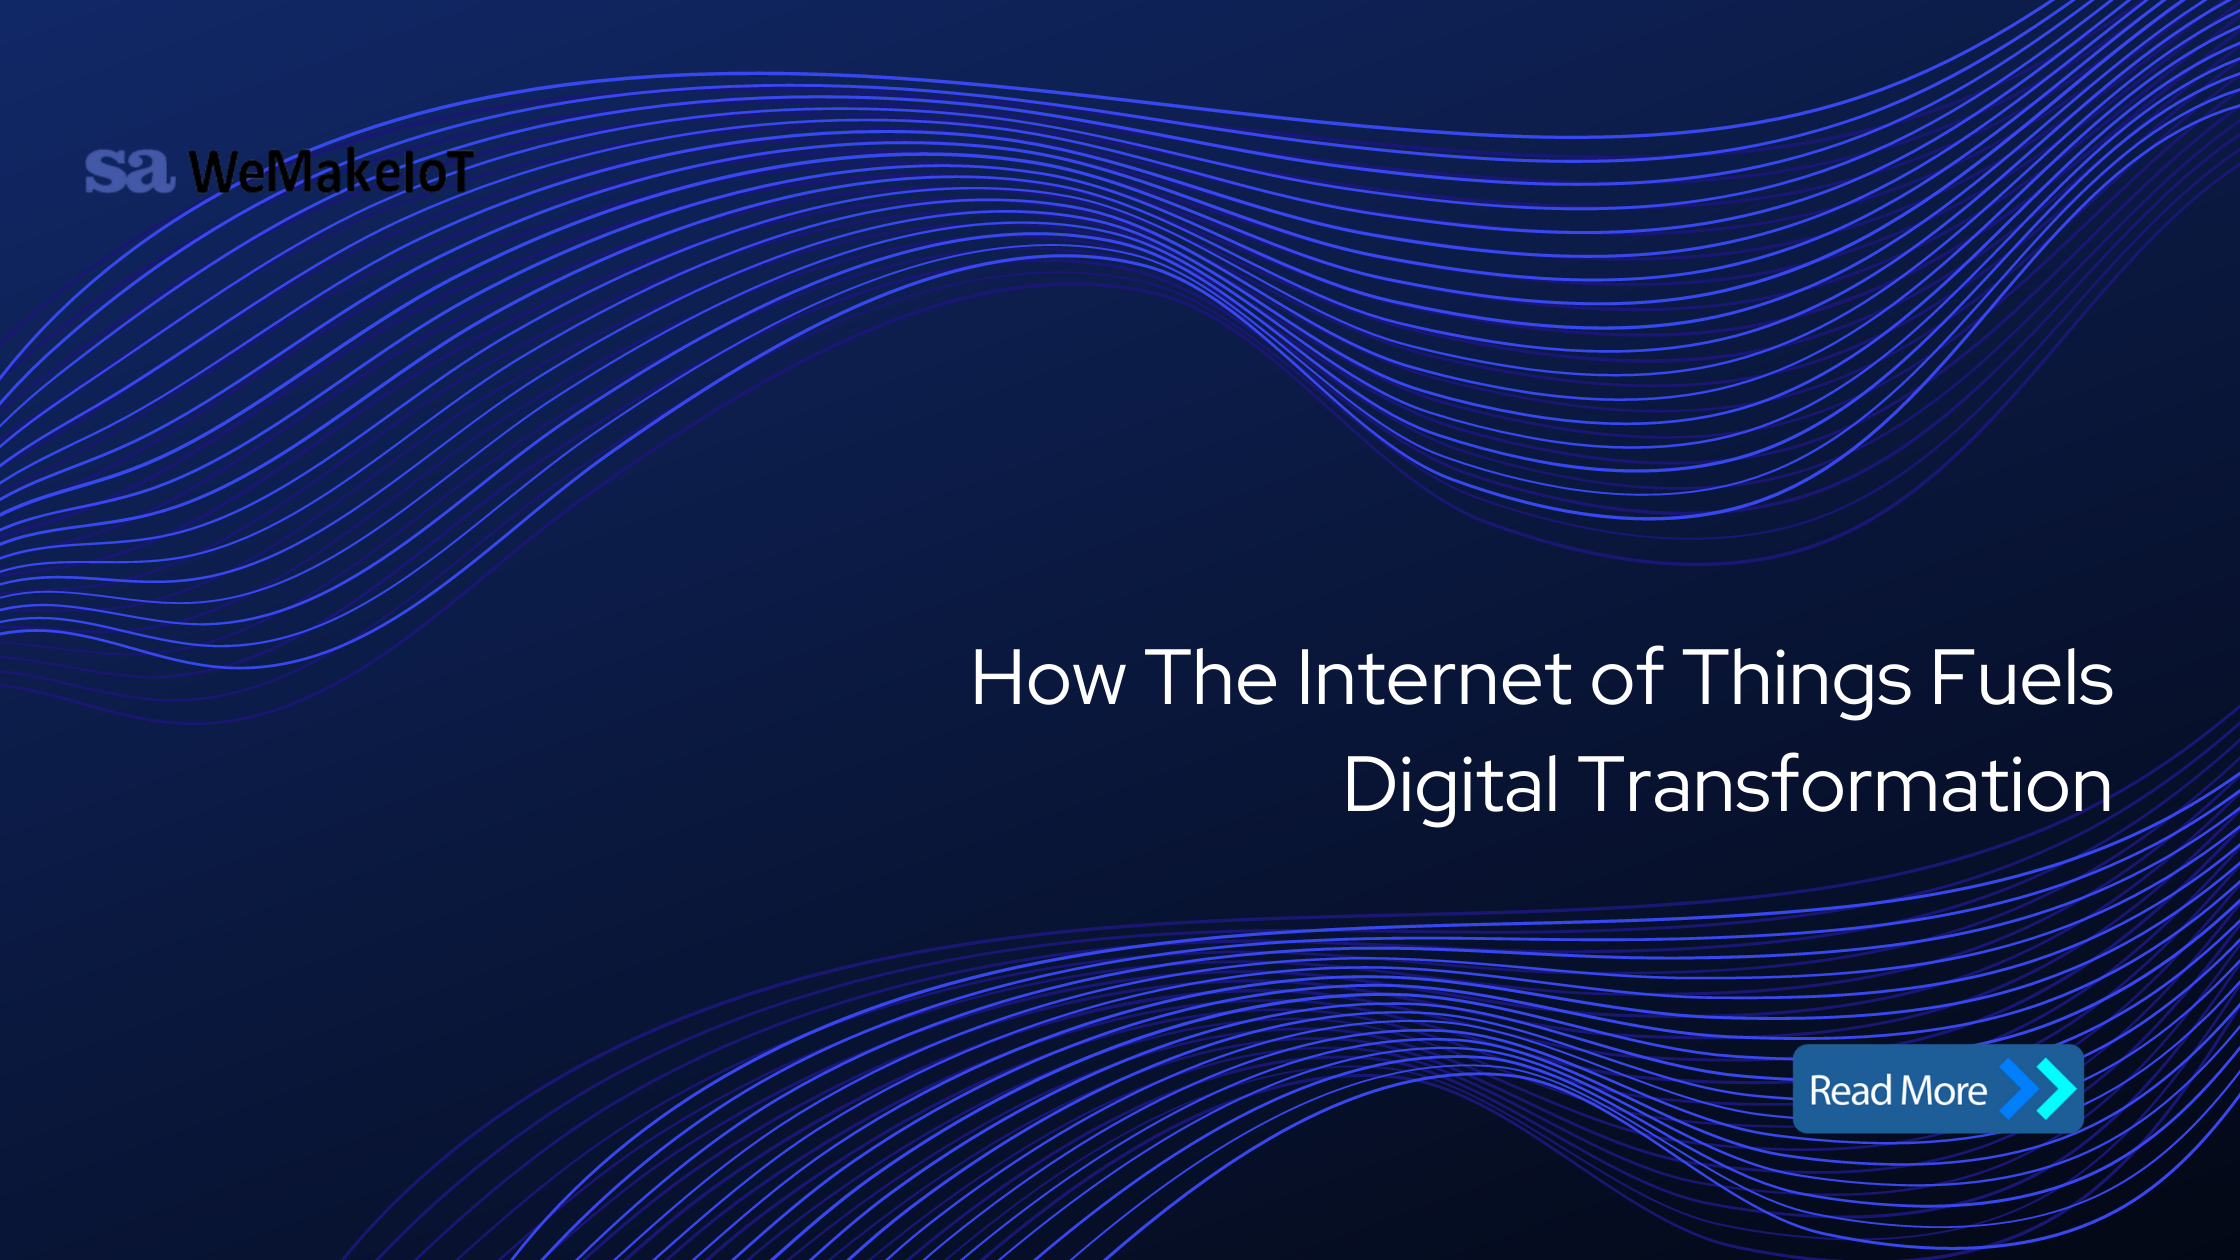 How The Internet of Things Fuels Digital Transformation